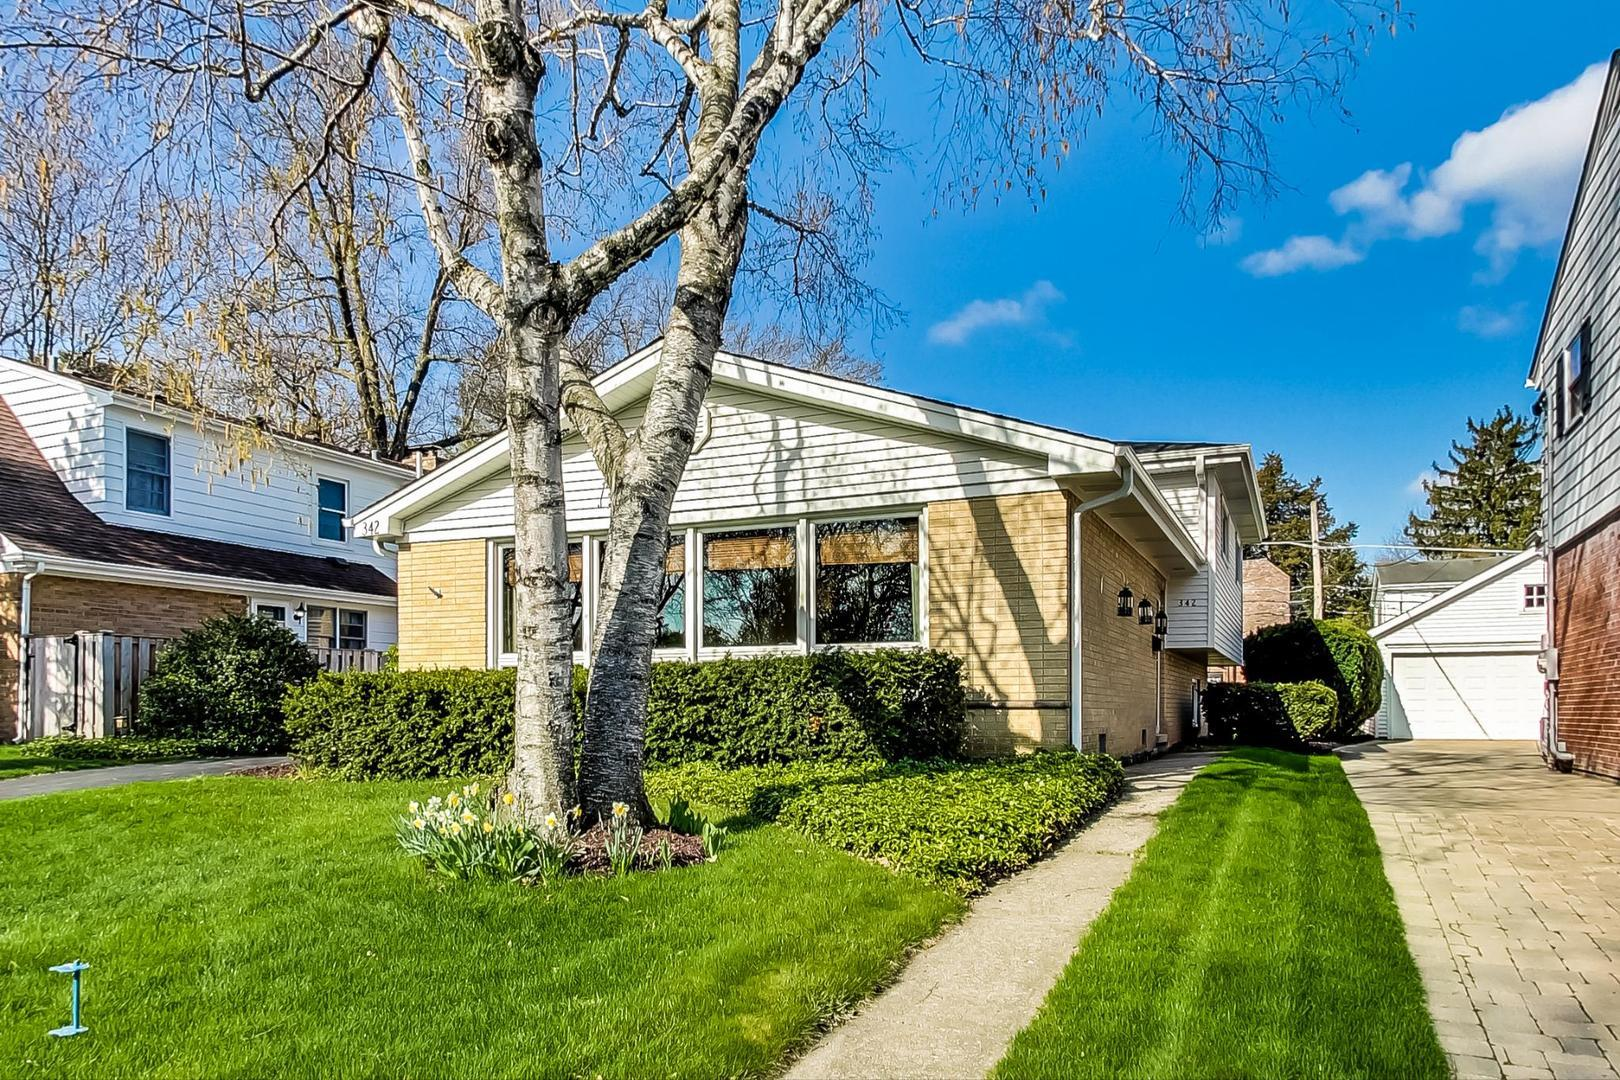 342 S Gibbons Avenue, Arlington Heights, IL 60004 - #: 11060957